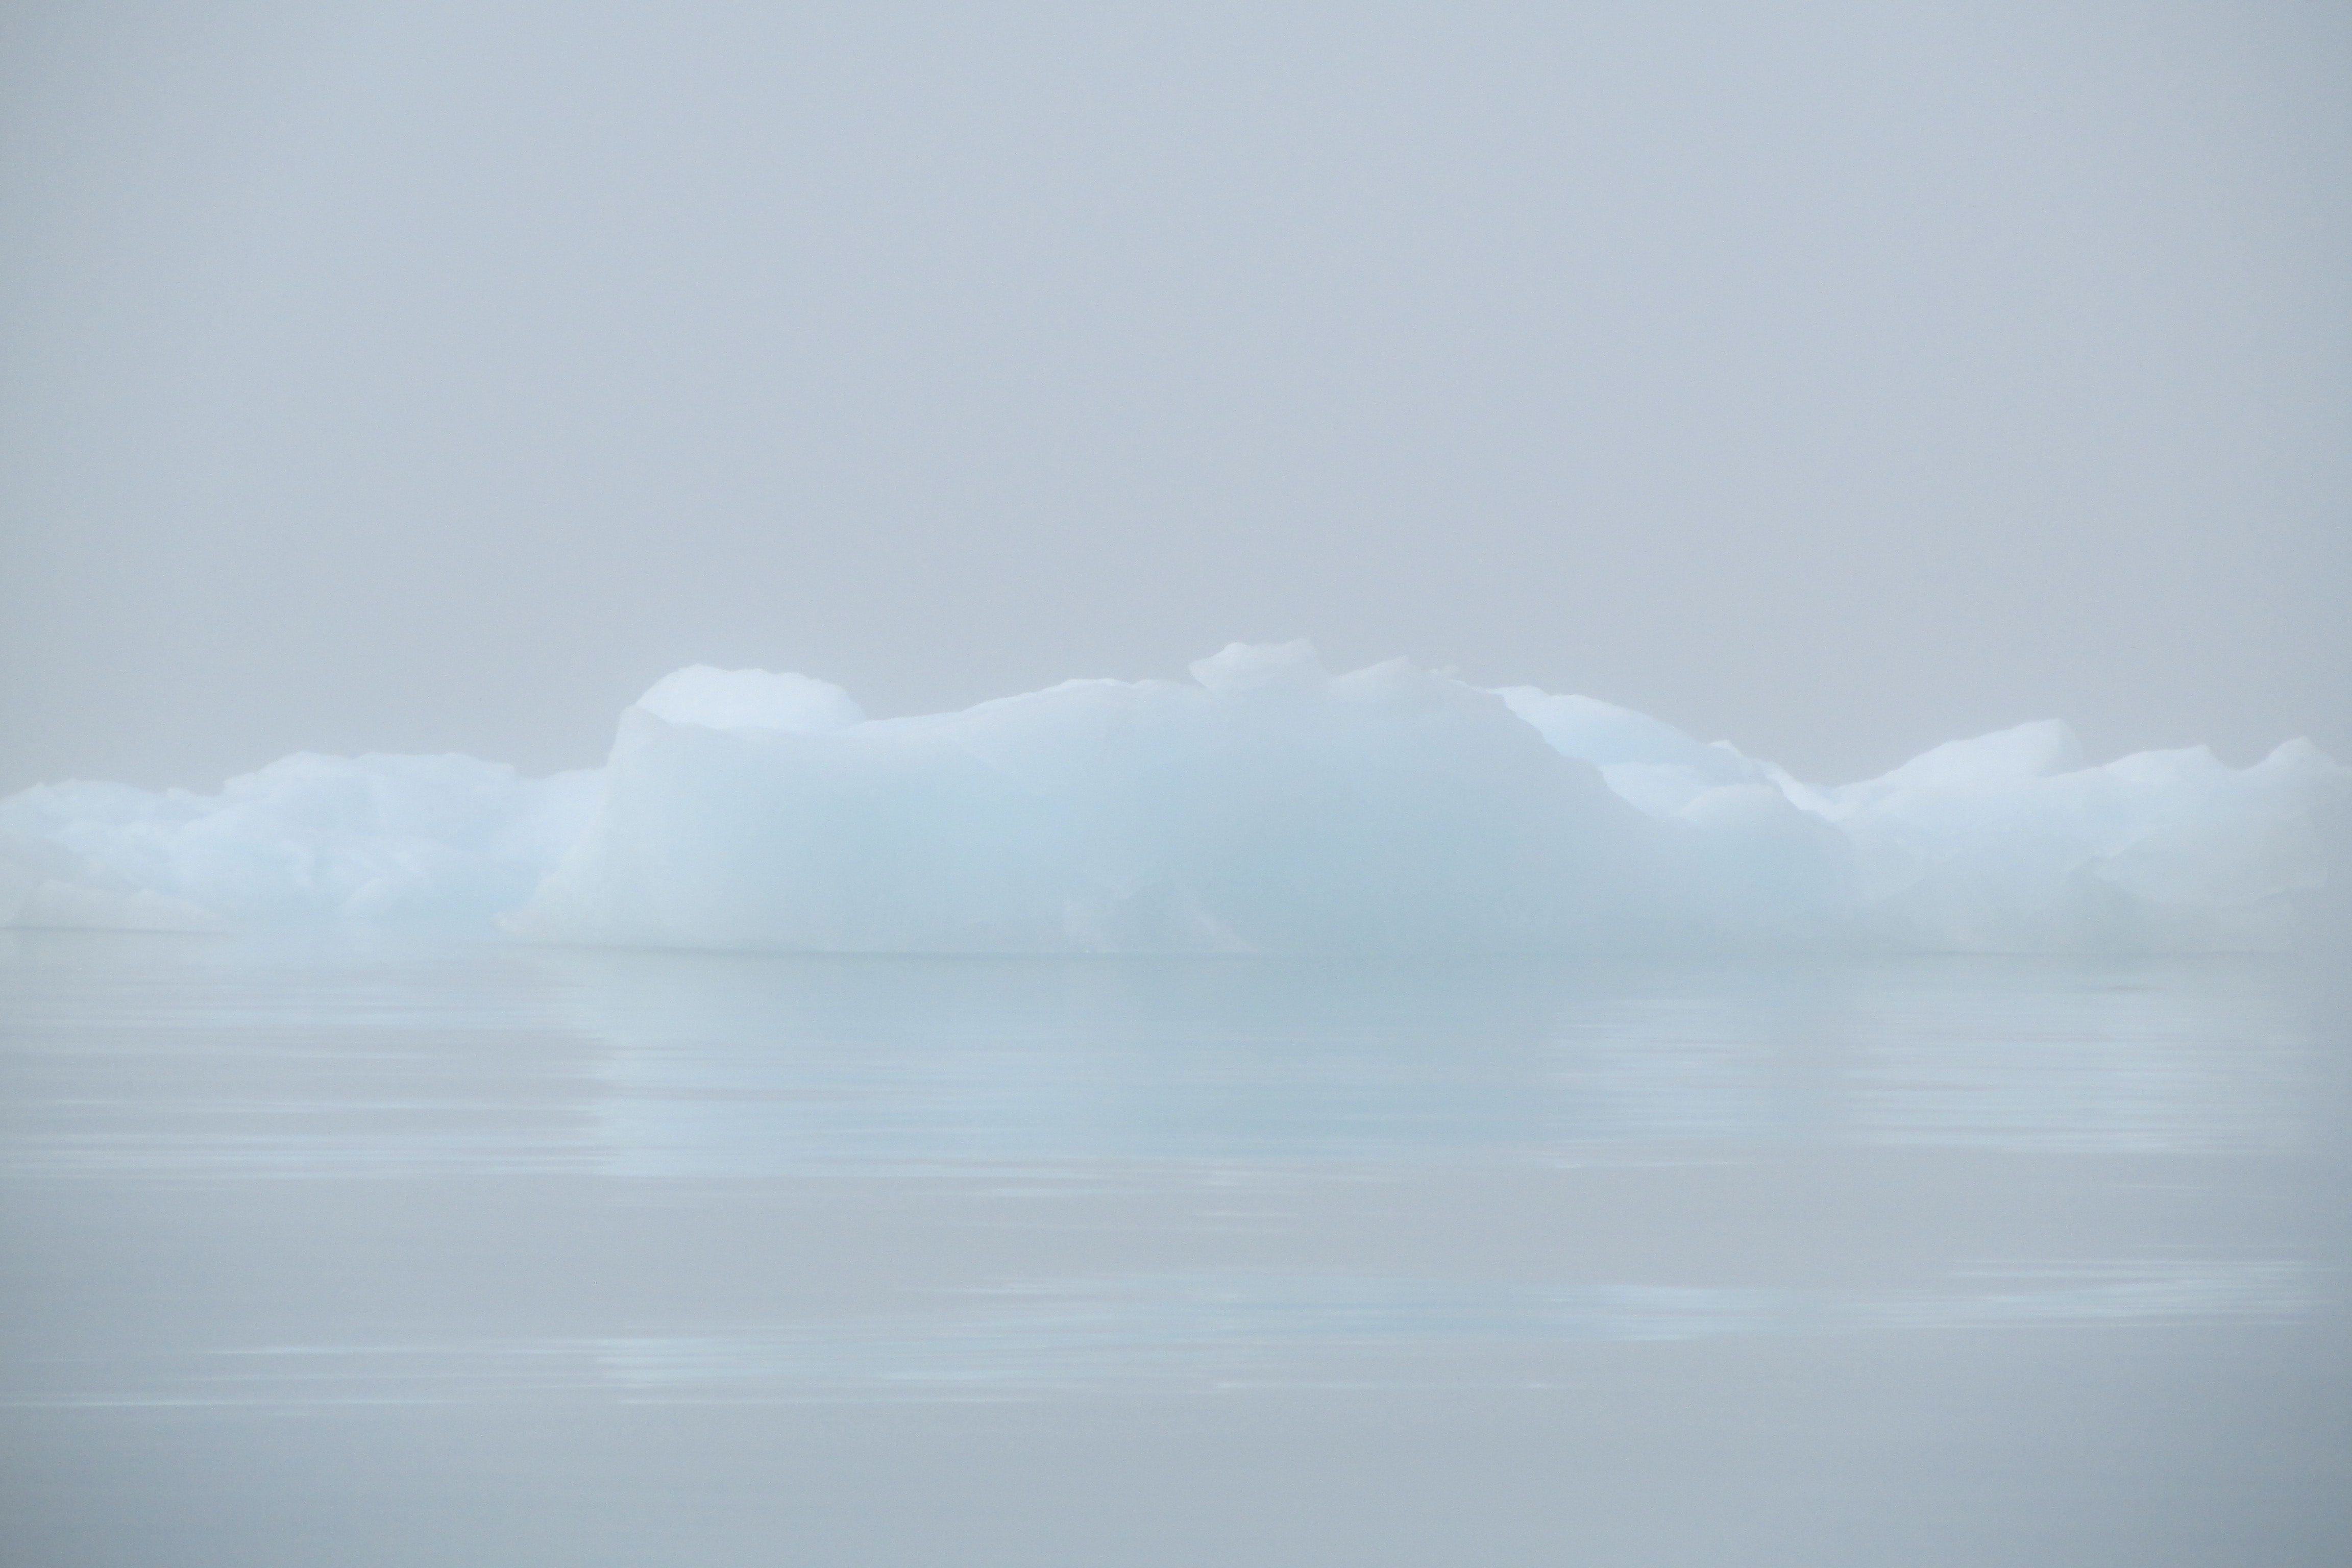 icebergs on body of water